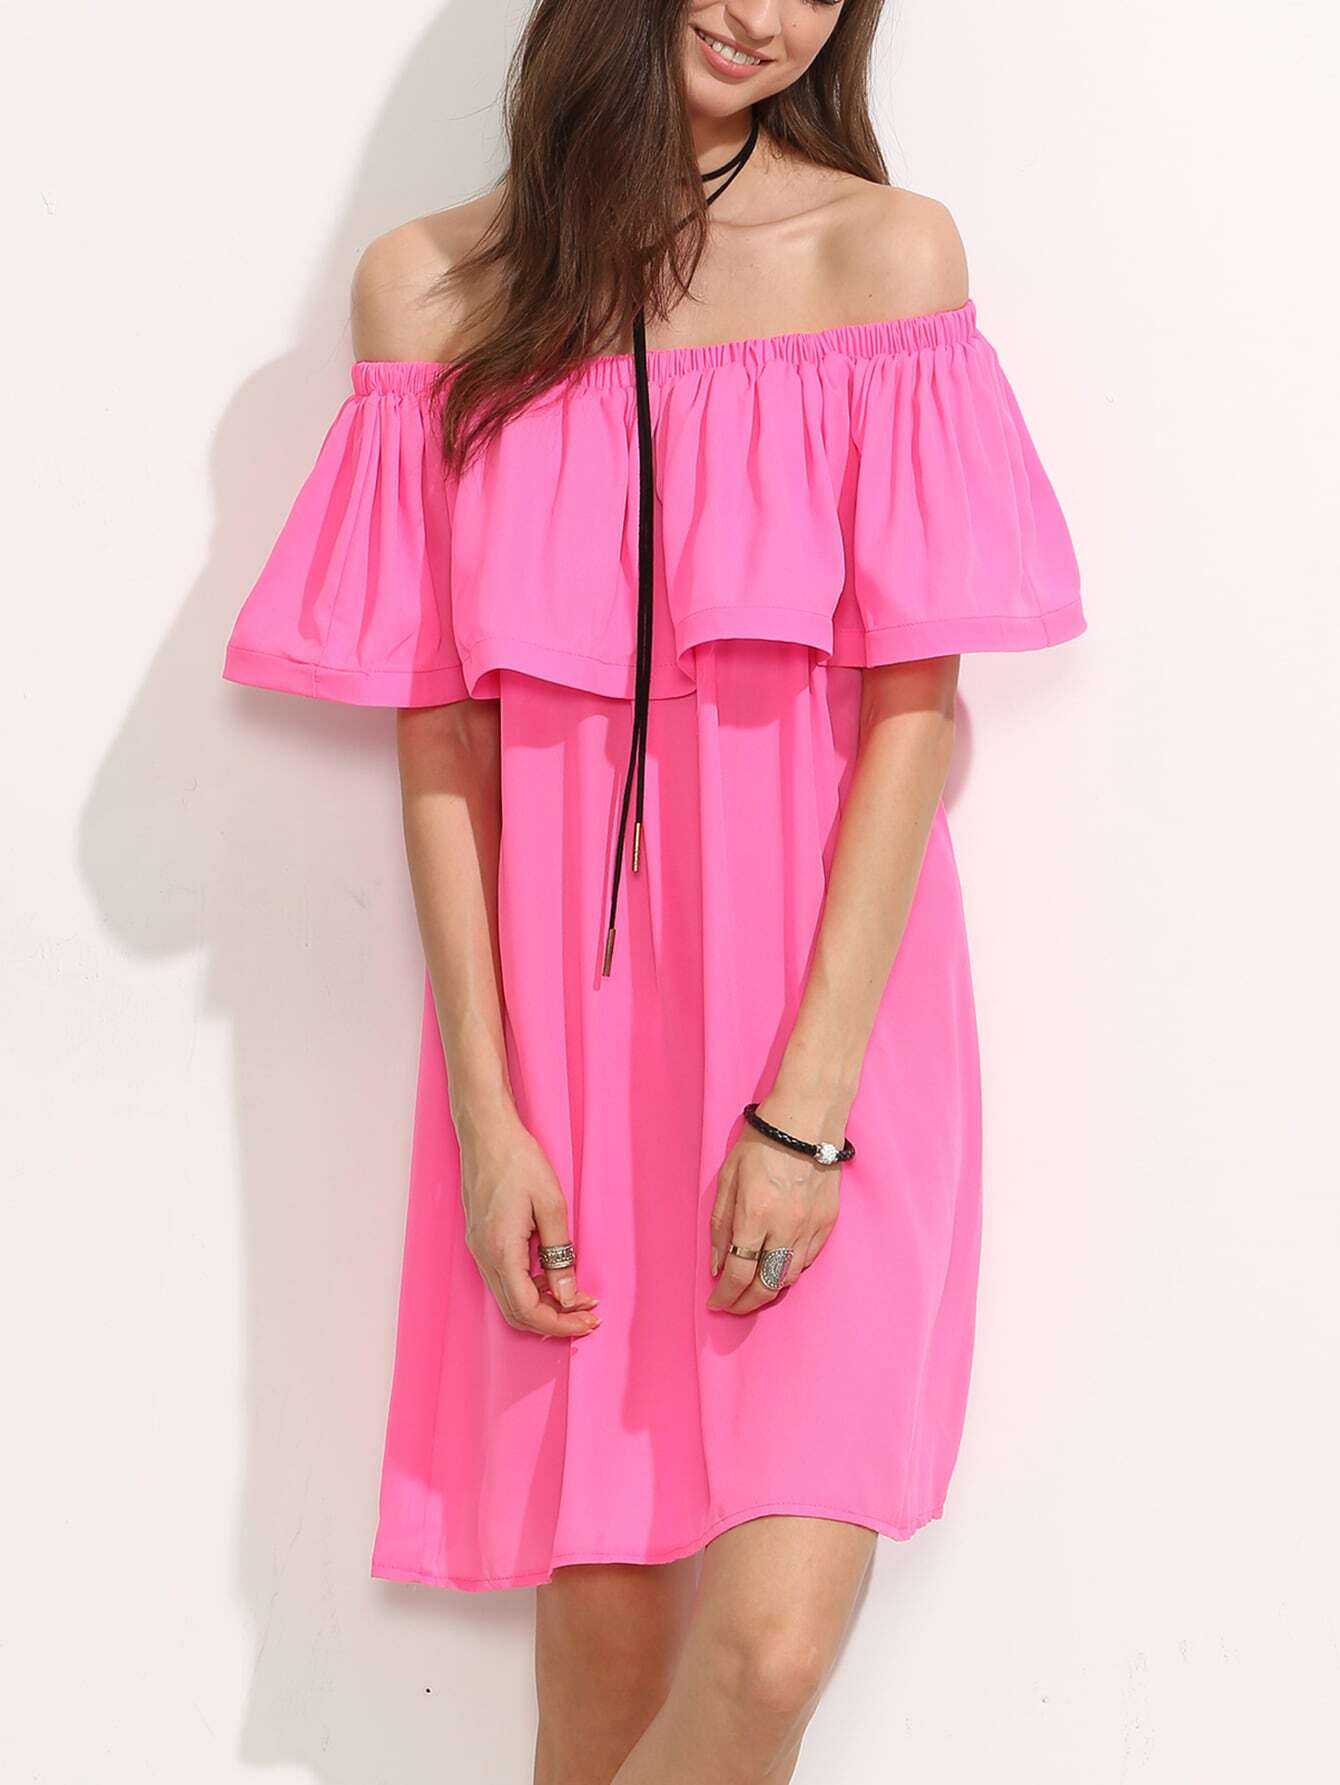 Hot Pink Ruffle Off The Shoulder Shift DressHot Pink Ruffle Off The Shoulder Shift Dress<br><br>color: Pink<br>size: L,M,S